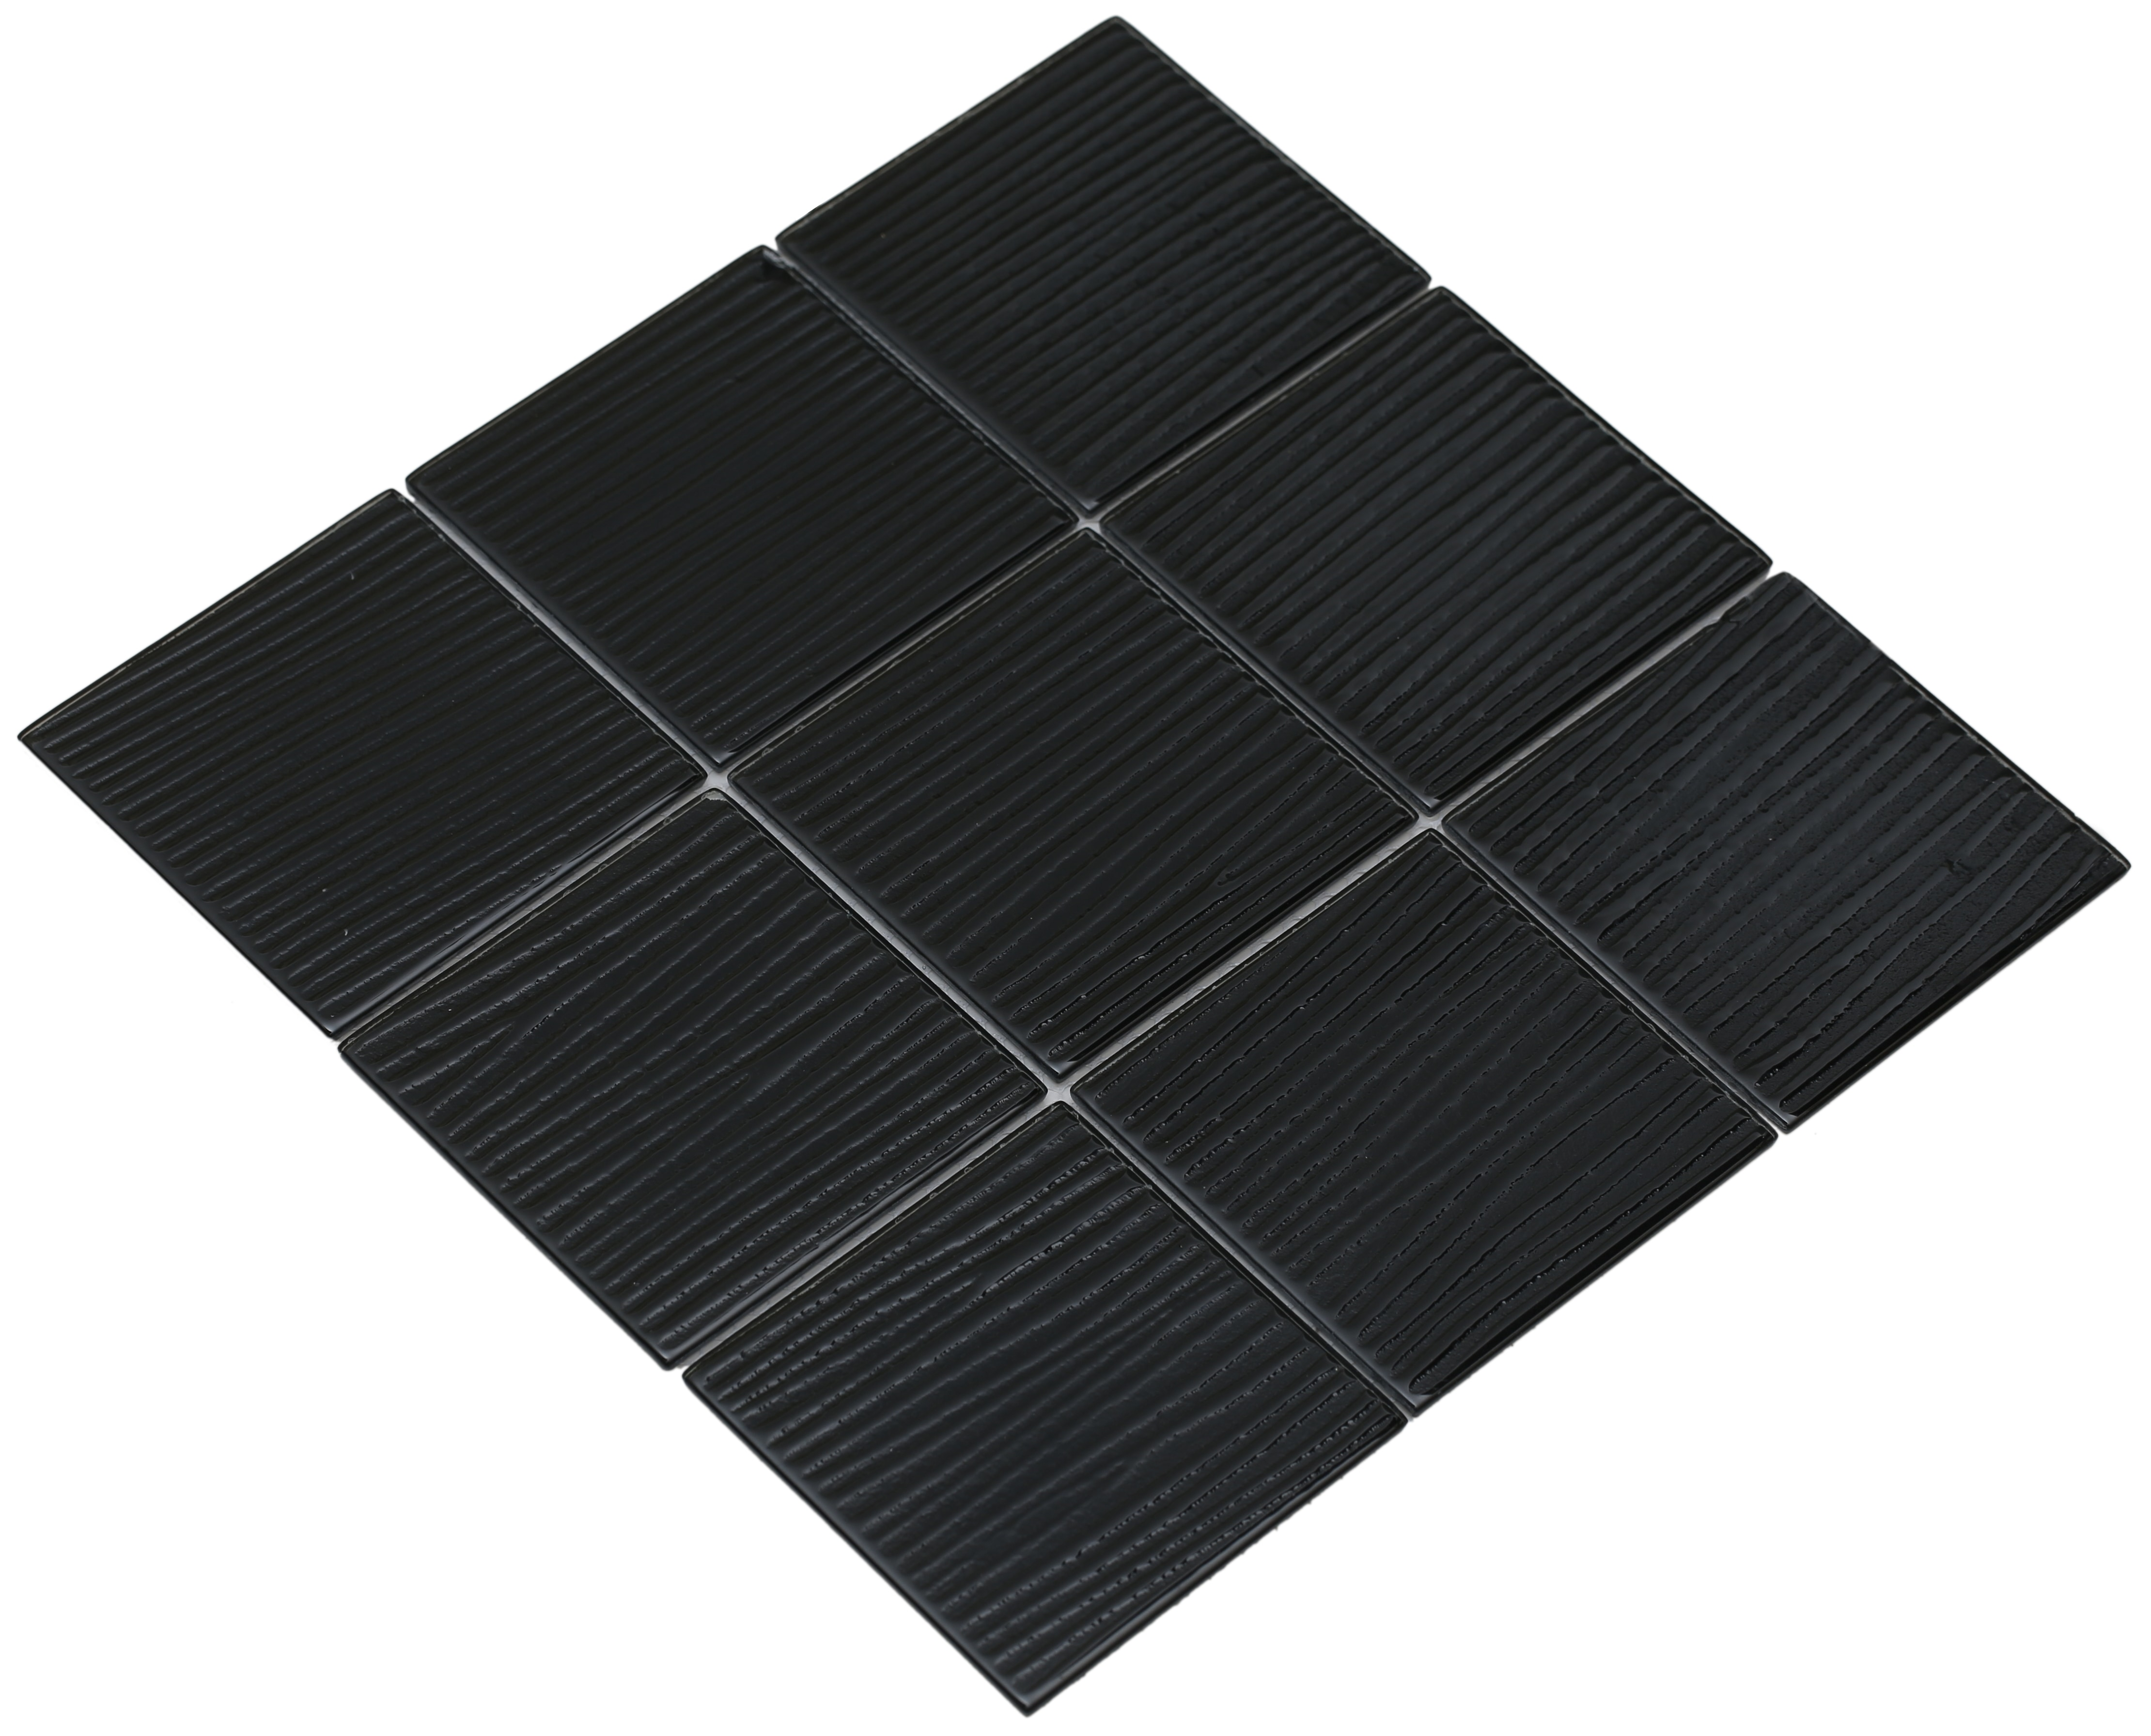 """Shiny black glass with a brushed texture / 4""""x4"""" Shilla Series 0"""